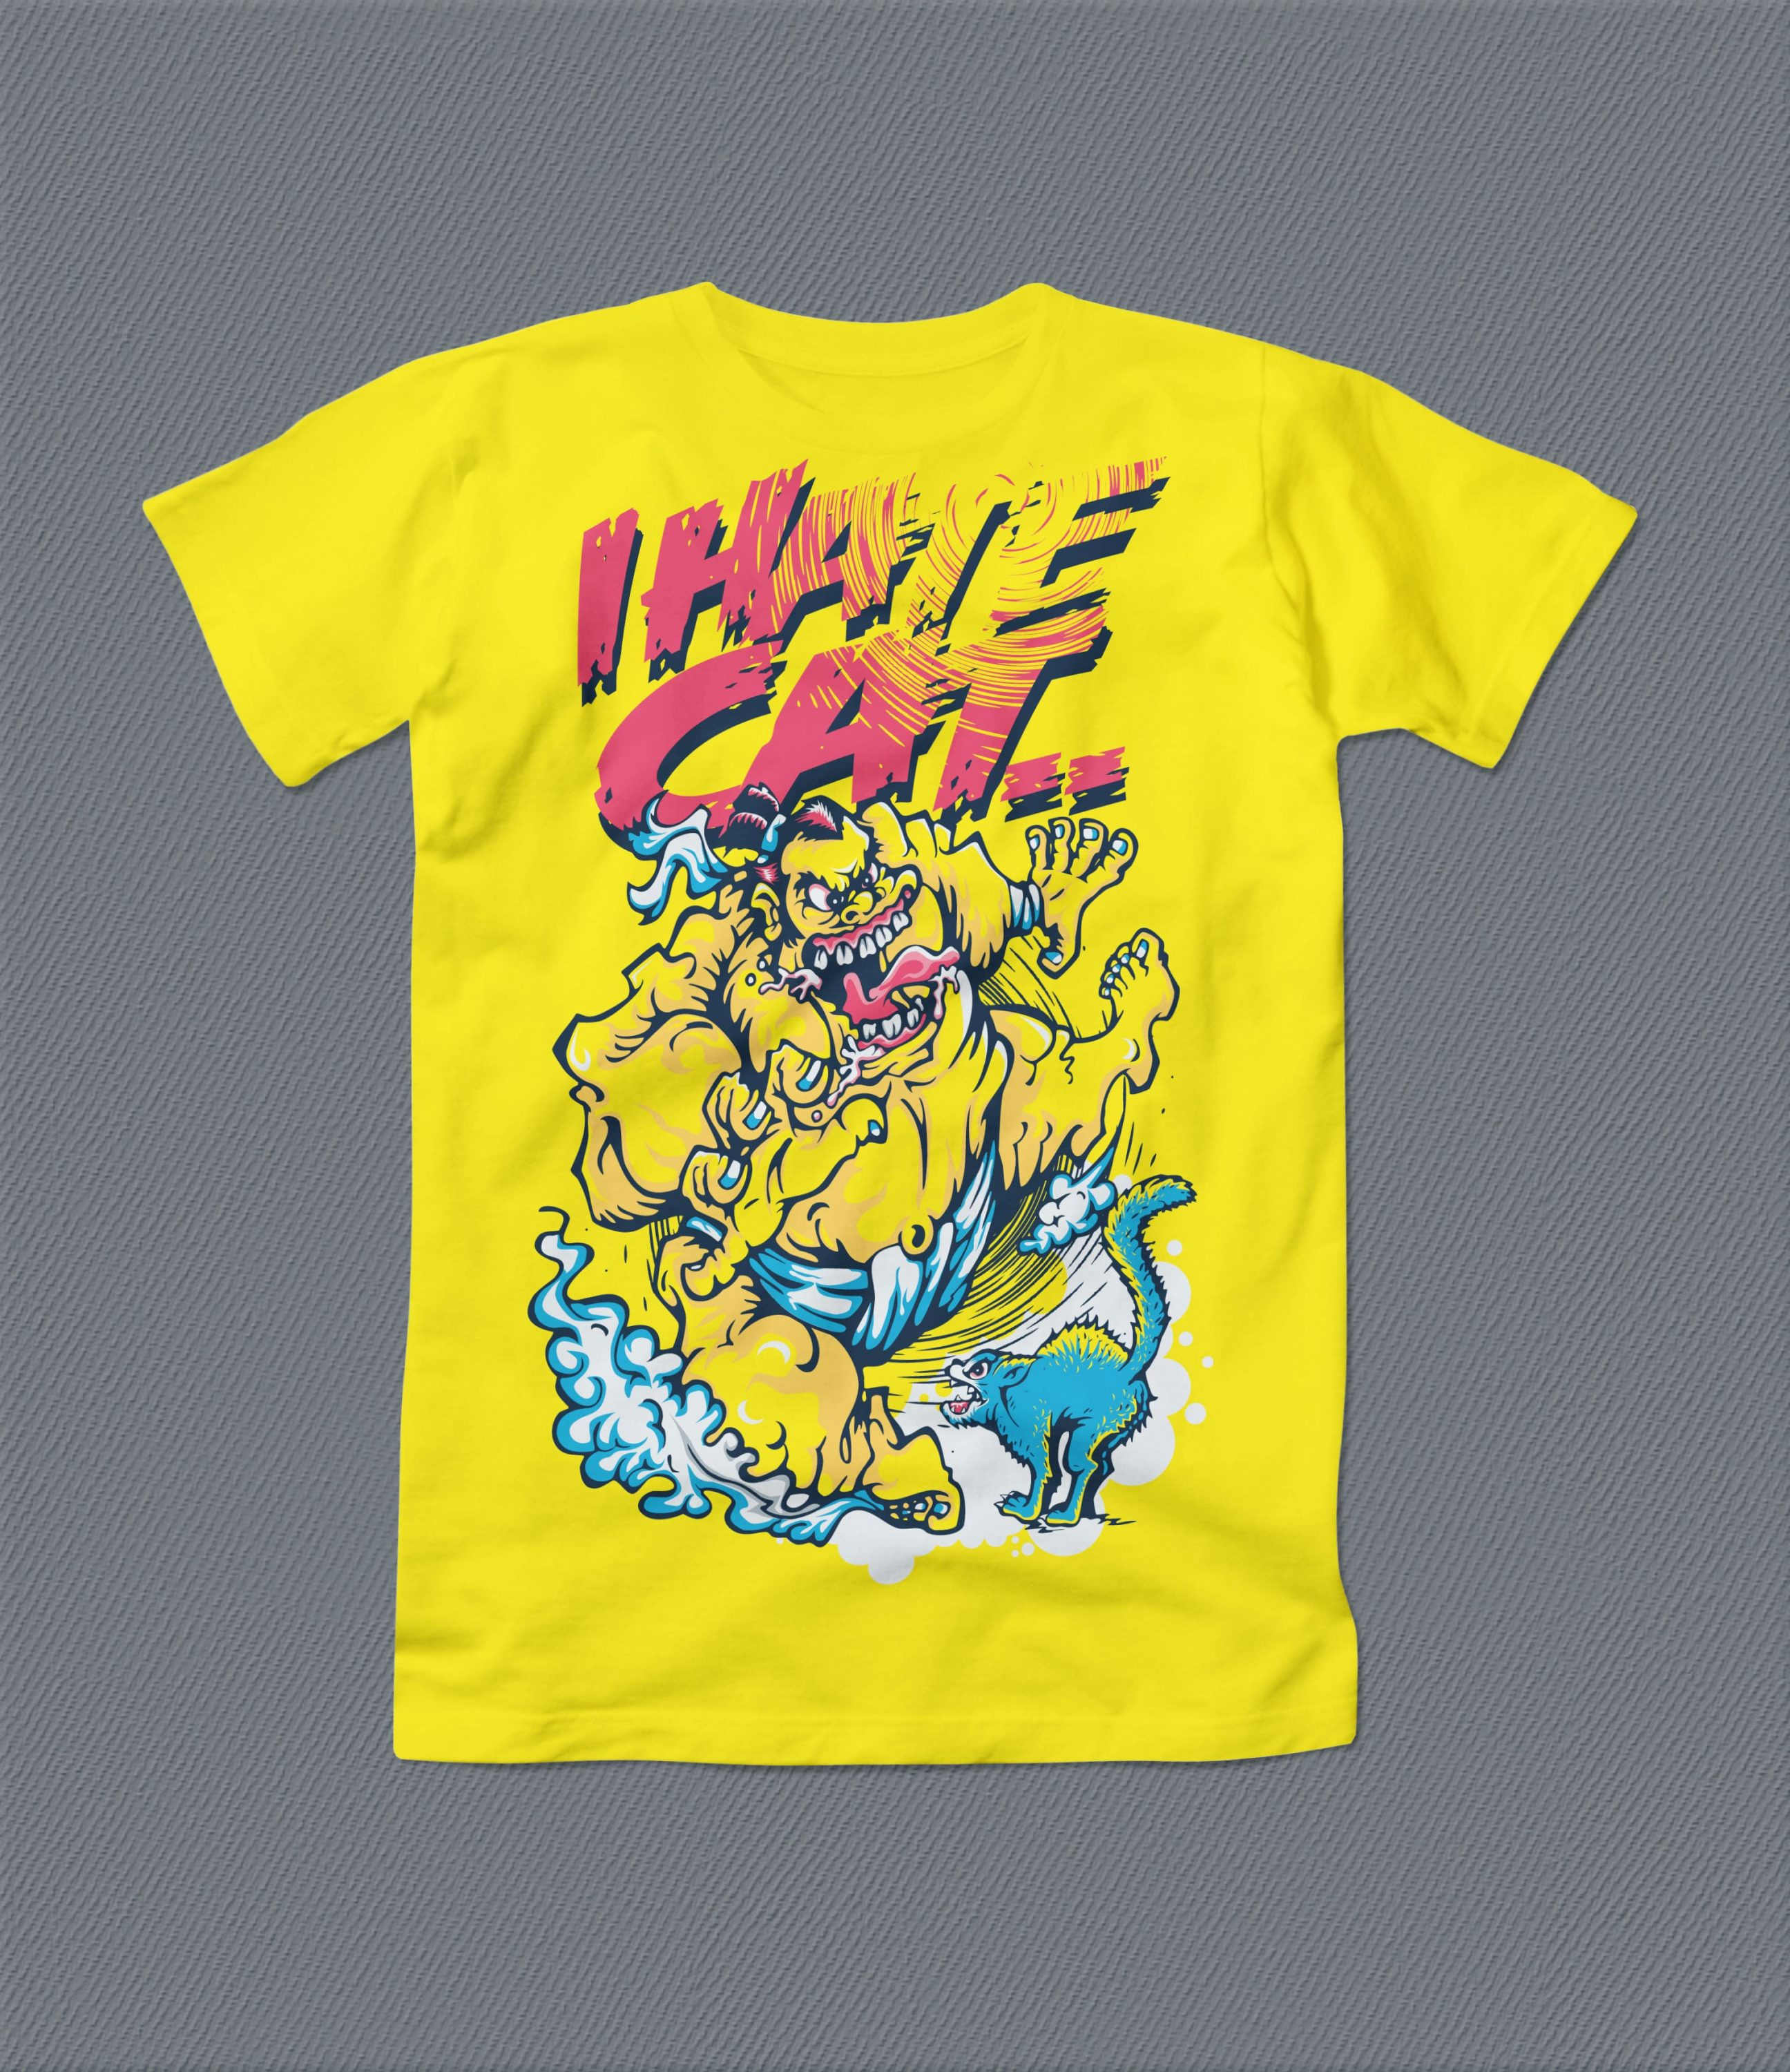 Yellow high quality t-shirt with strange monster.